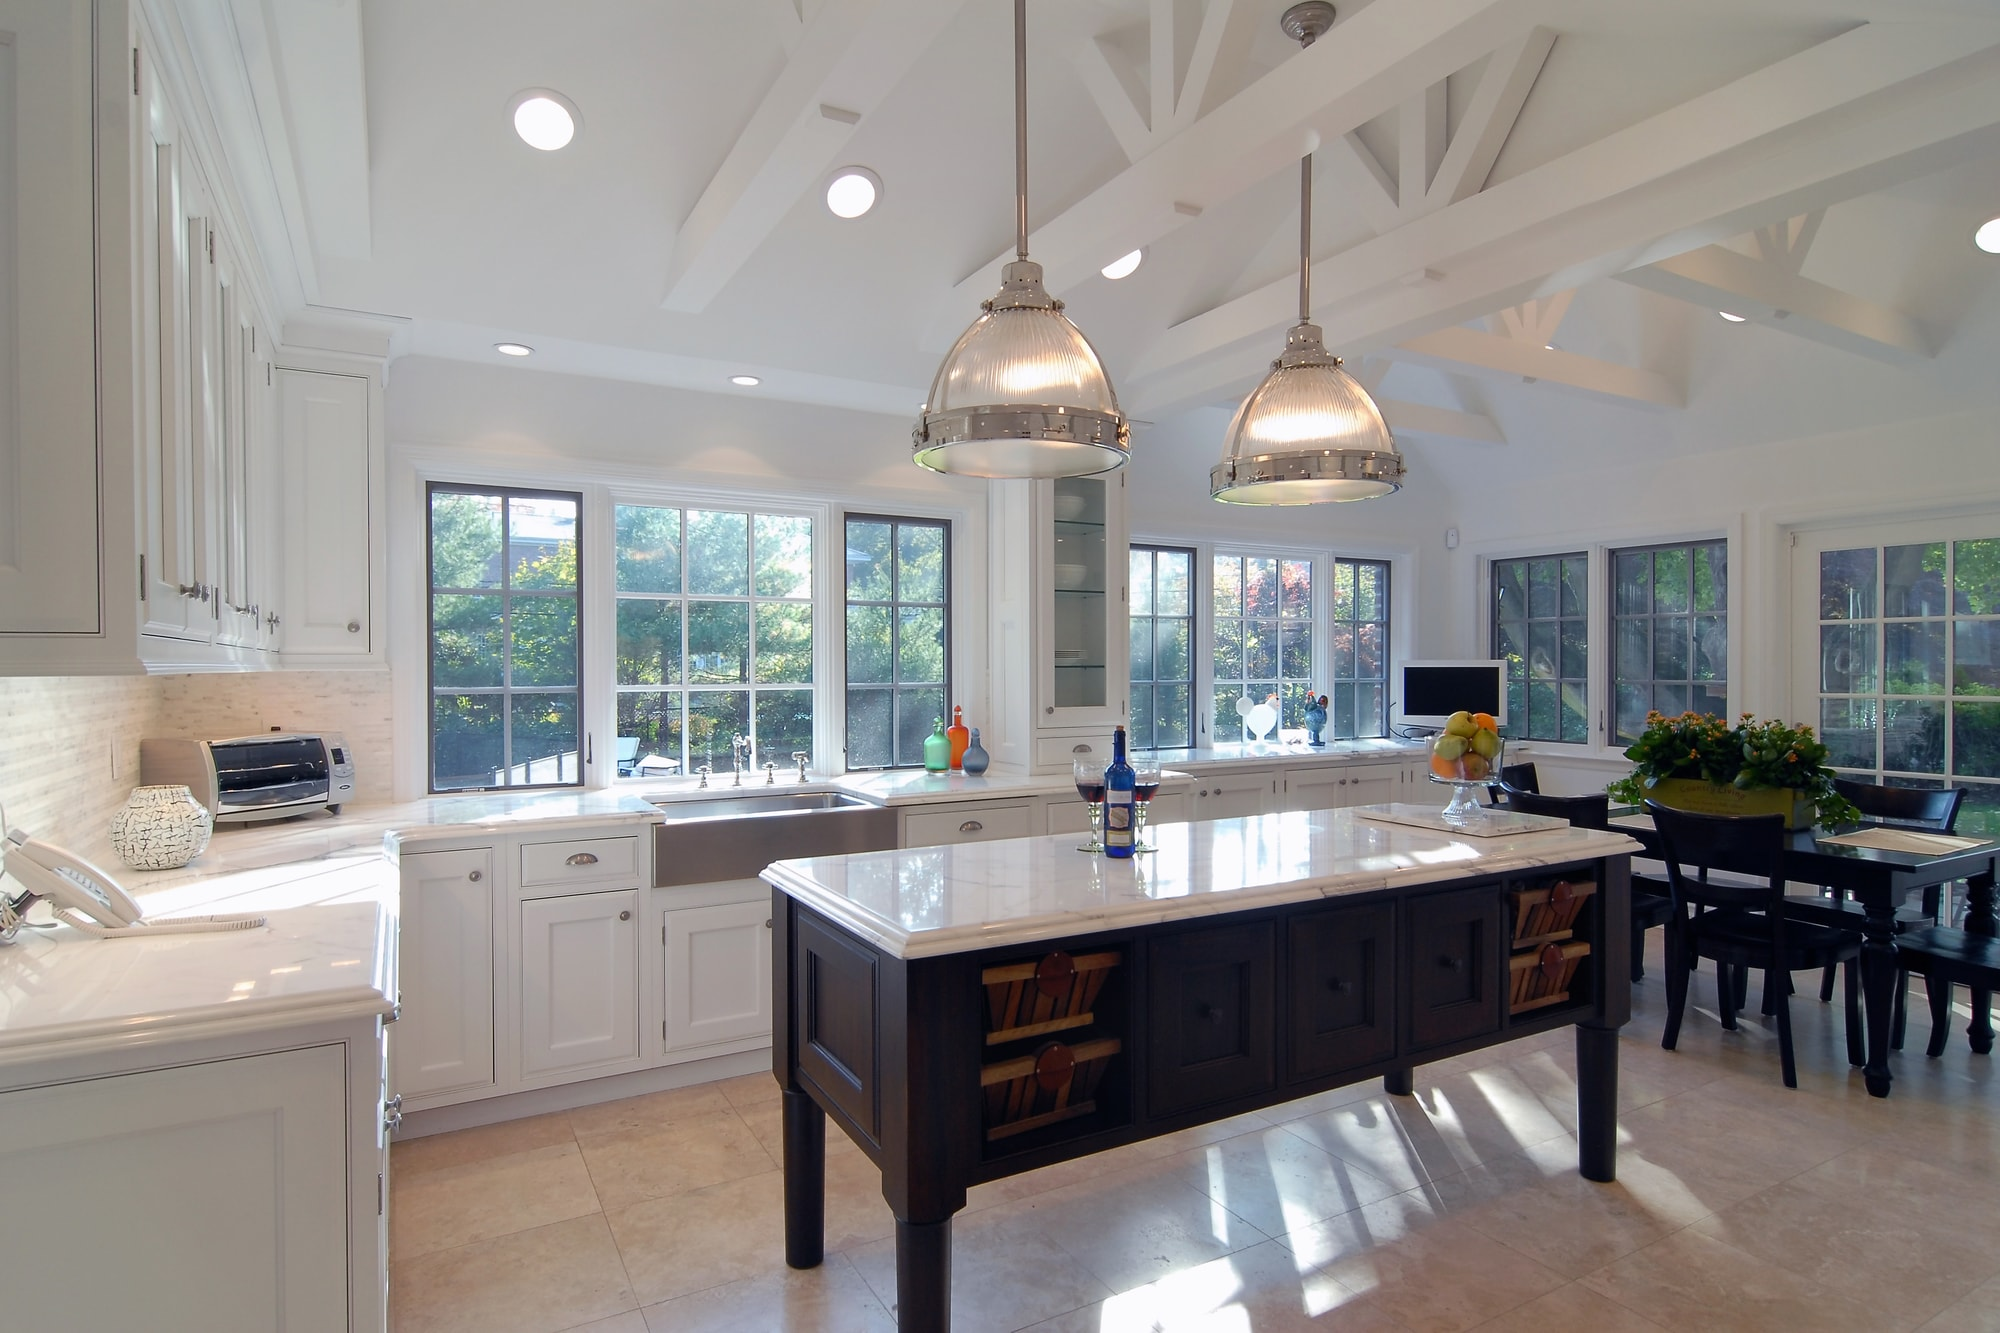 Transitional style kitchen with plenty of bay windows